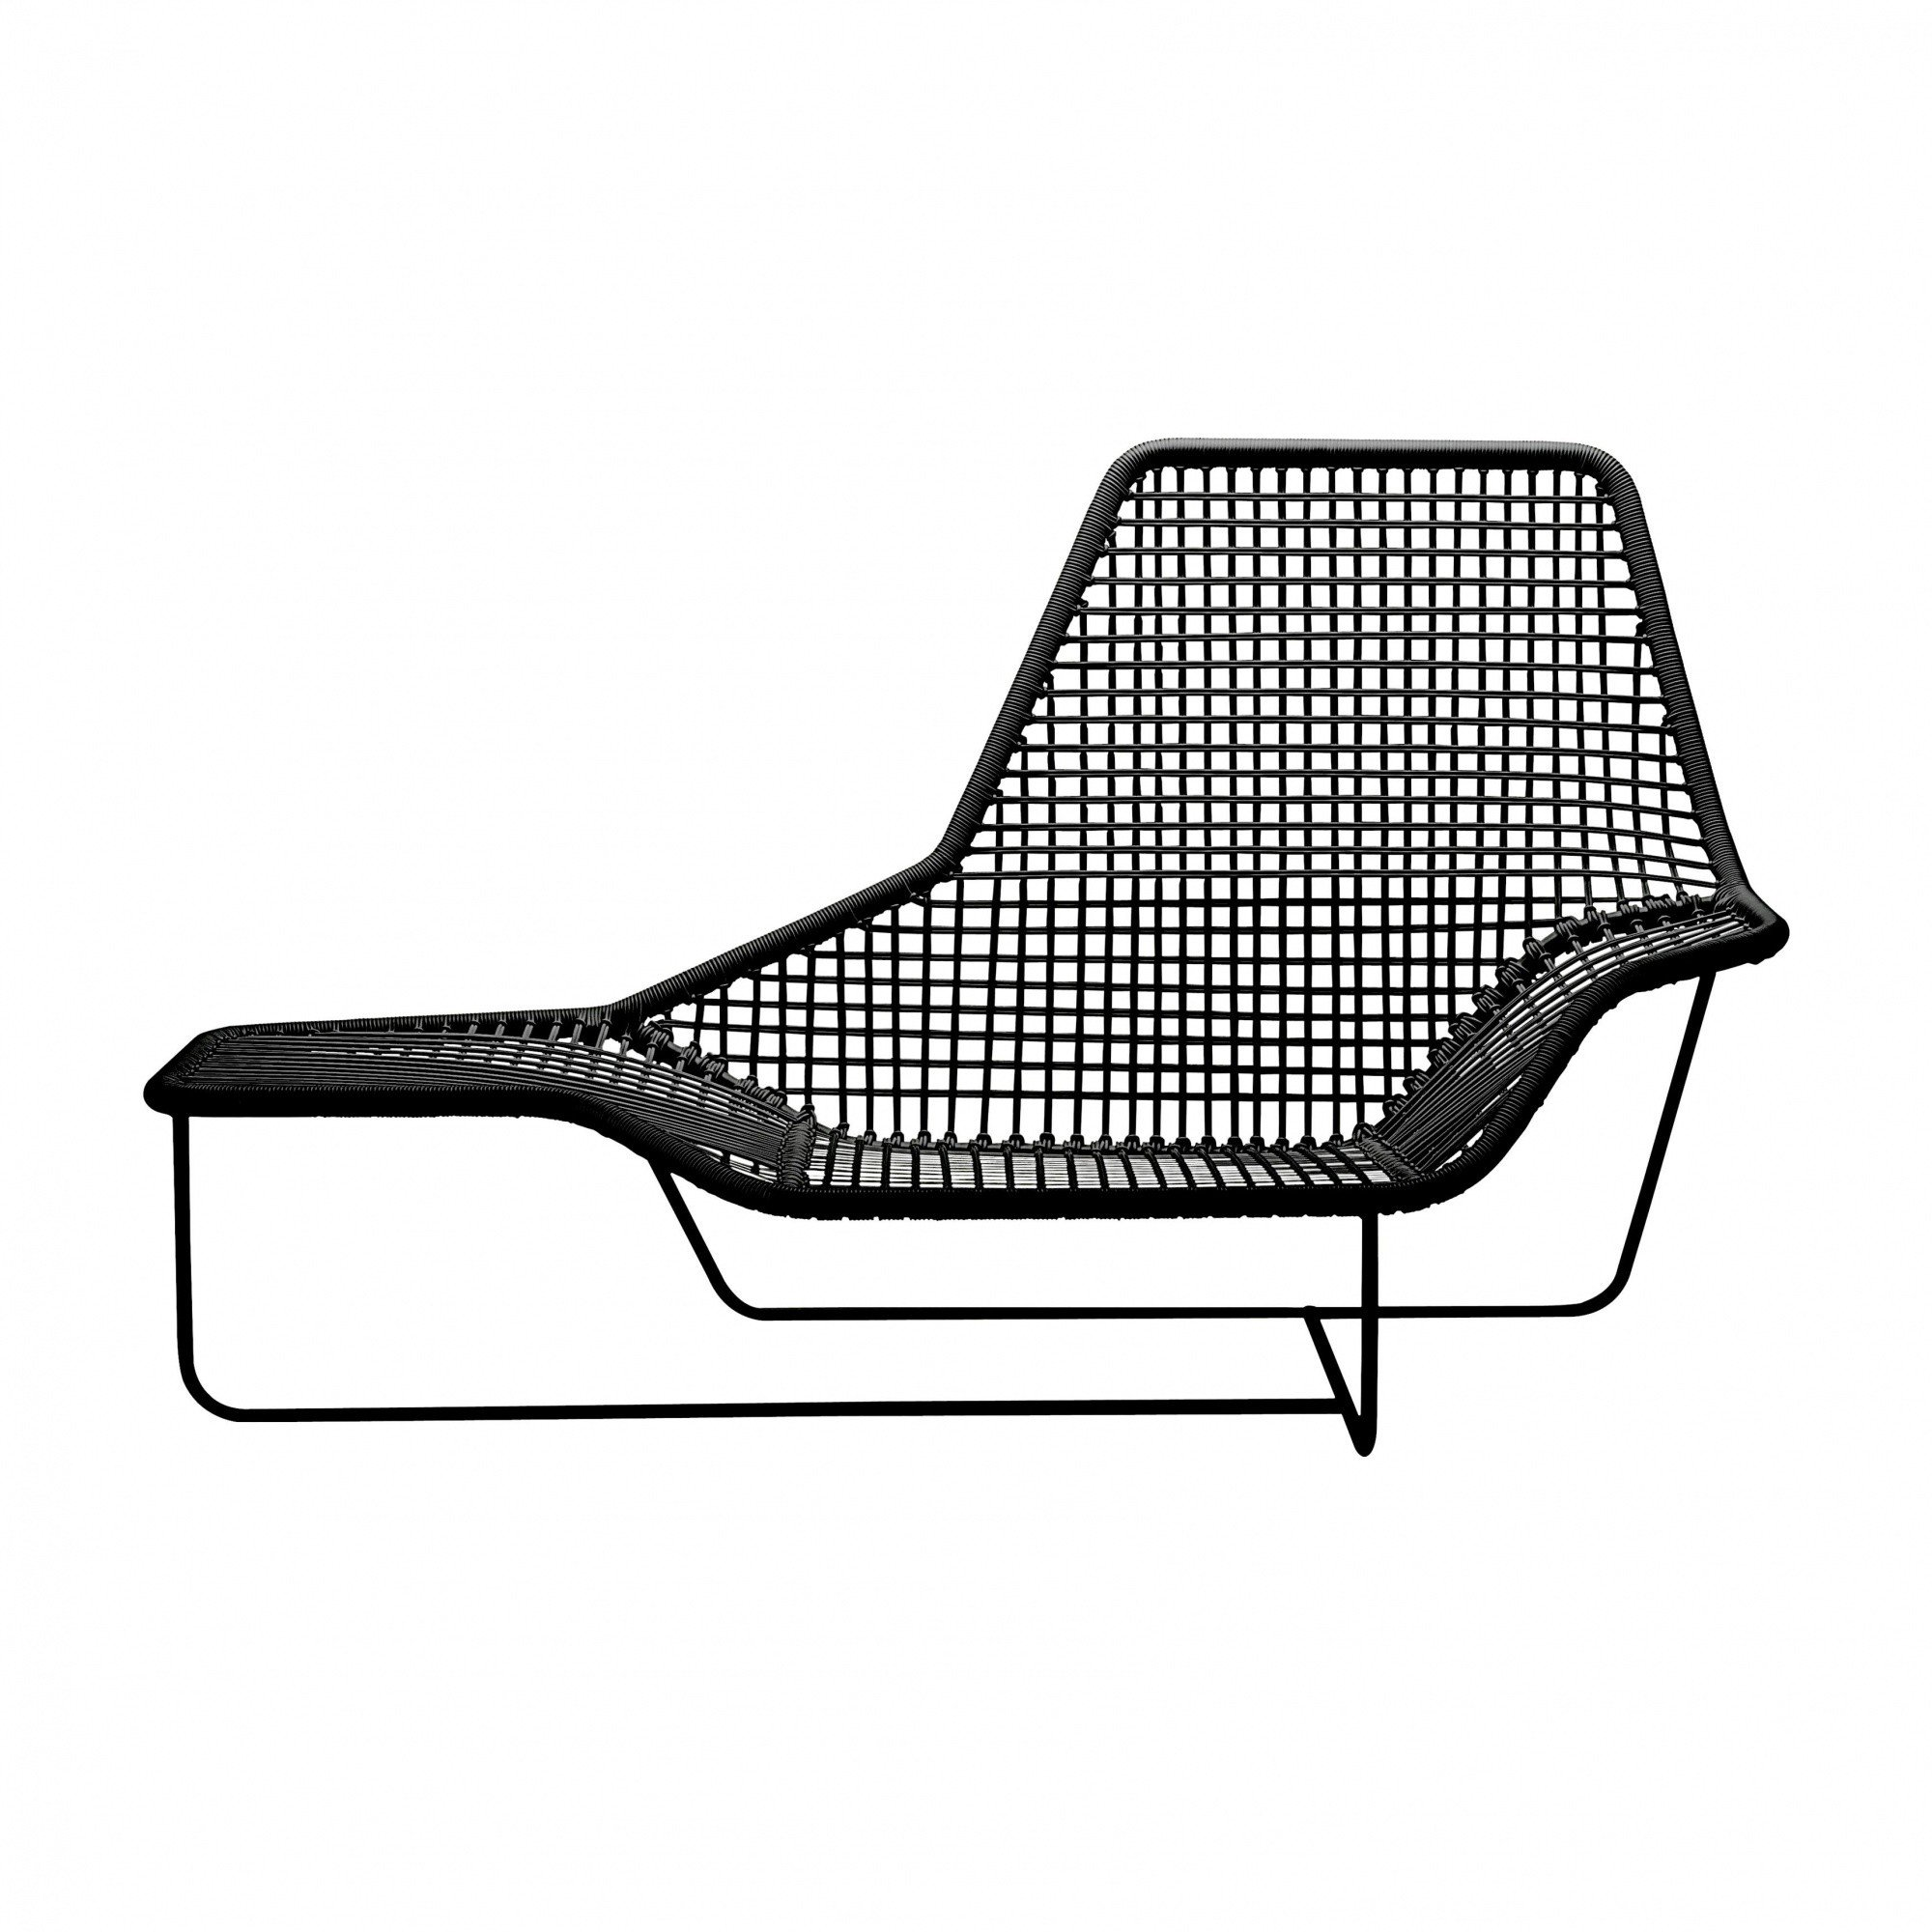 Zanotta Lama Outdoor Lounger | AmbienteDirect on chaise furniture, chaise sofa sleeper, chaise recliner chair,